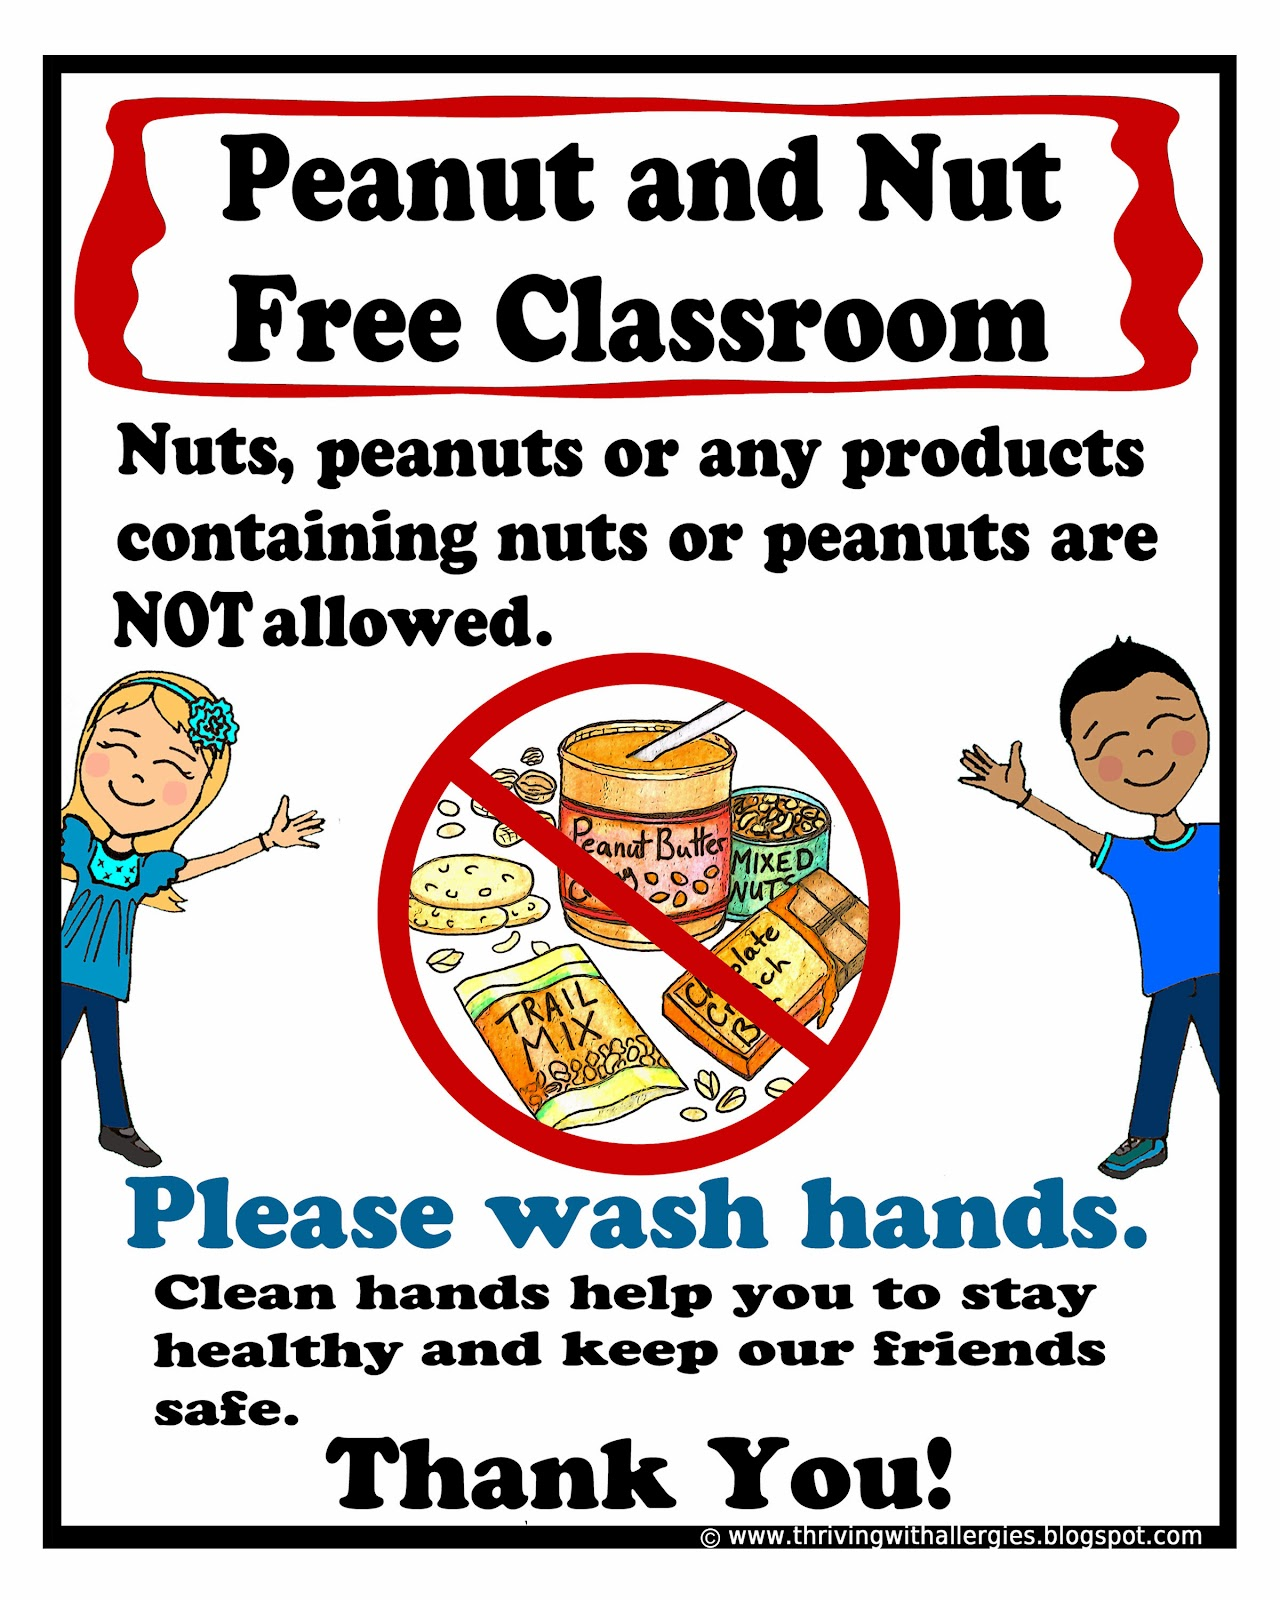 peanut-and-nut-free-classroom-poster8x10